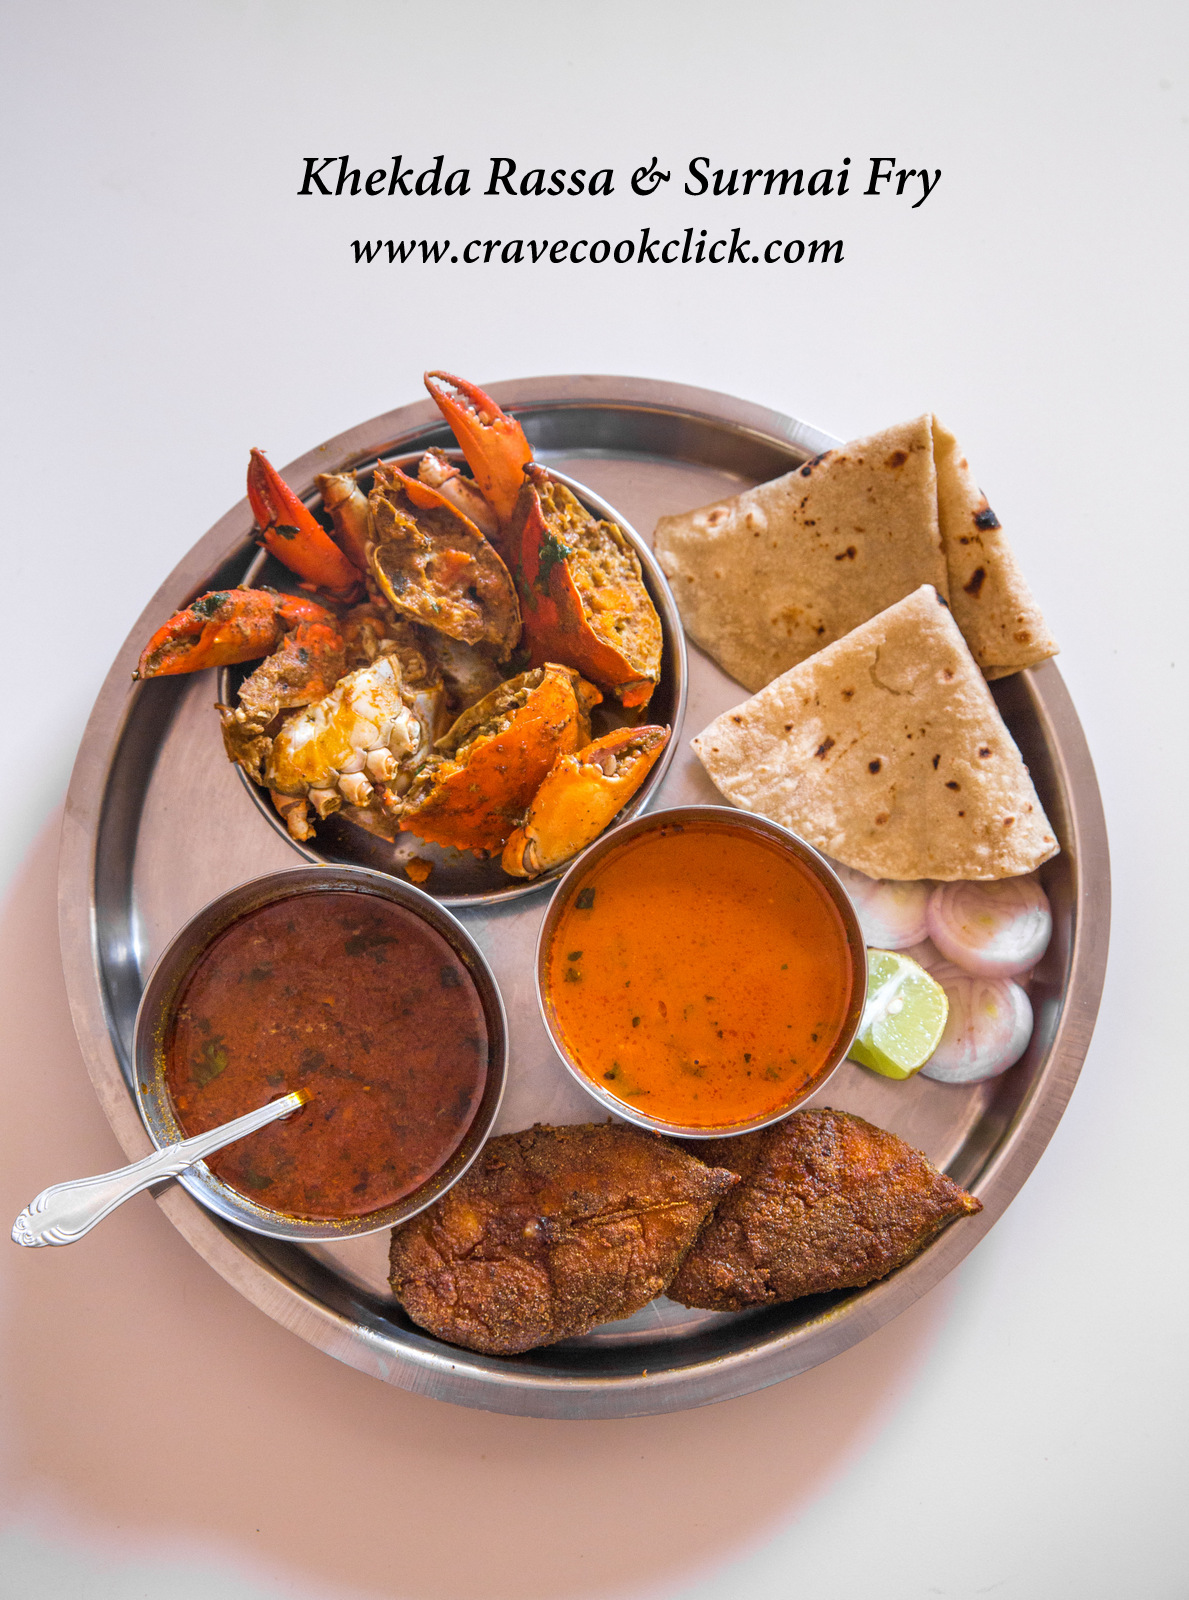 malavani recipes, crab curry, khekda rassa, indian recipes, food photography, seafood recipes, surmai fish fry, fish fry, indian non vegetarian recipes, traditional indian recipes